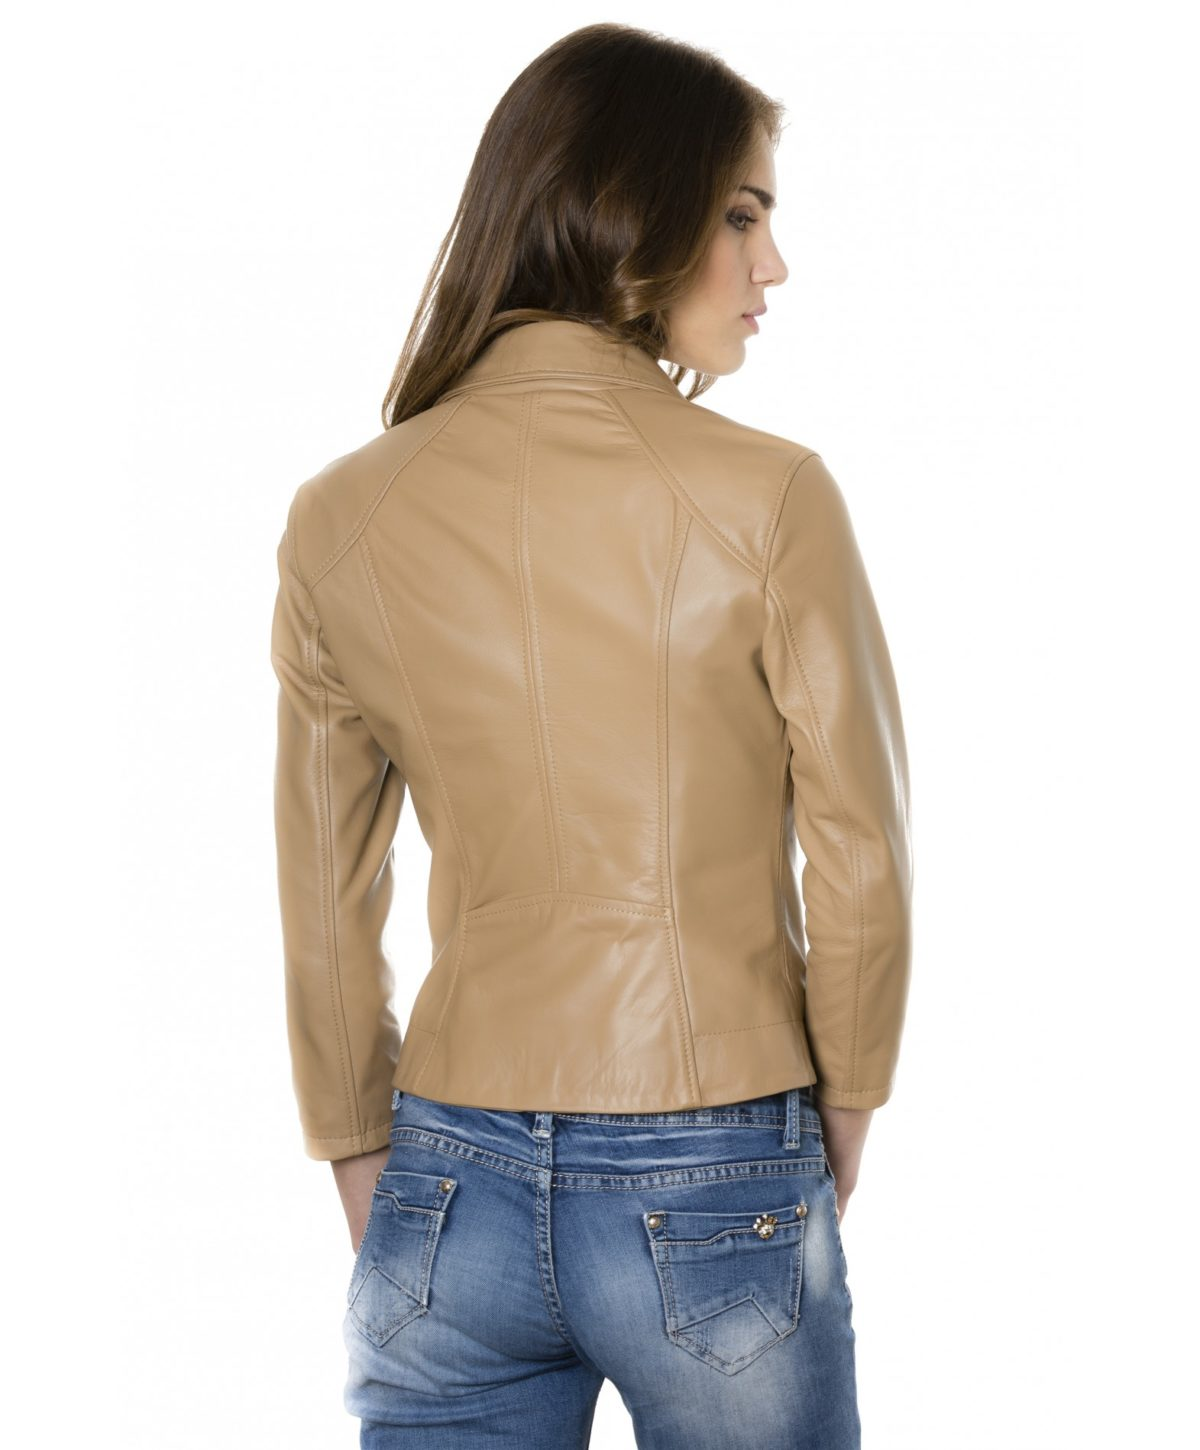 kcc-brown-color-lamb-leather-perfecto-jacket-smooth-effect (4)